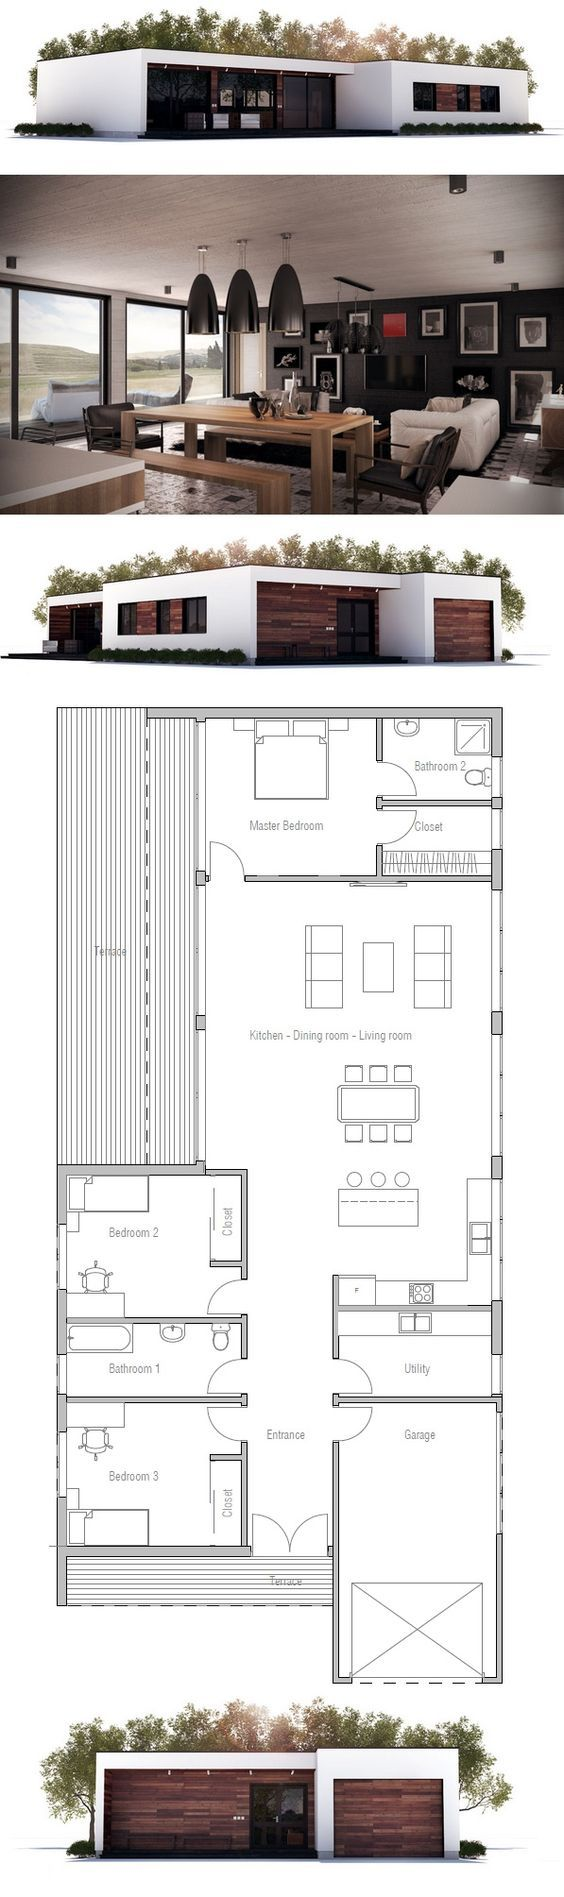 81 best planos casas images on pinterest small houses house utility room in the front narrow house plan new home minimalist house design